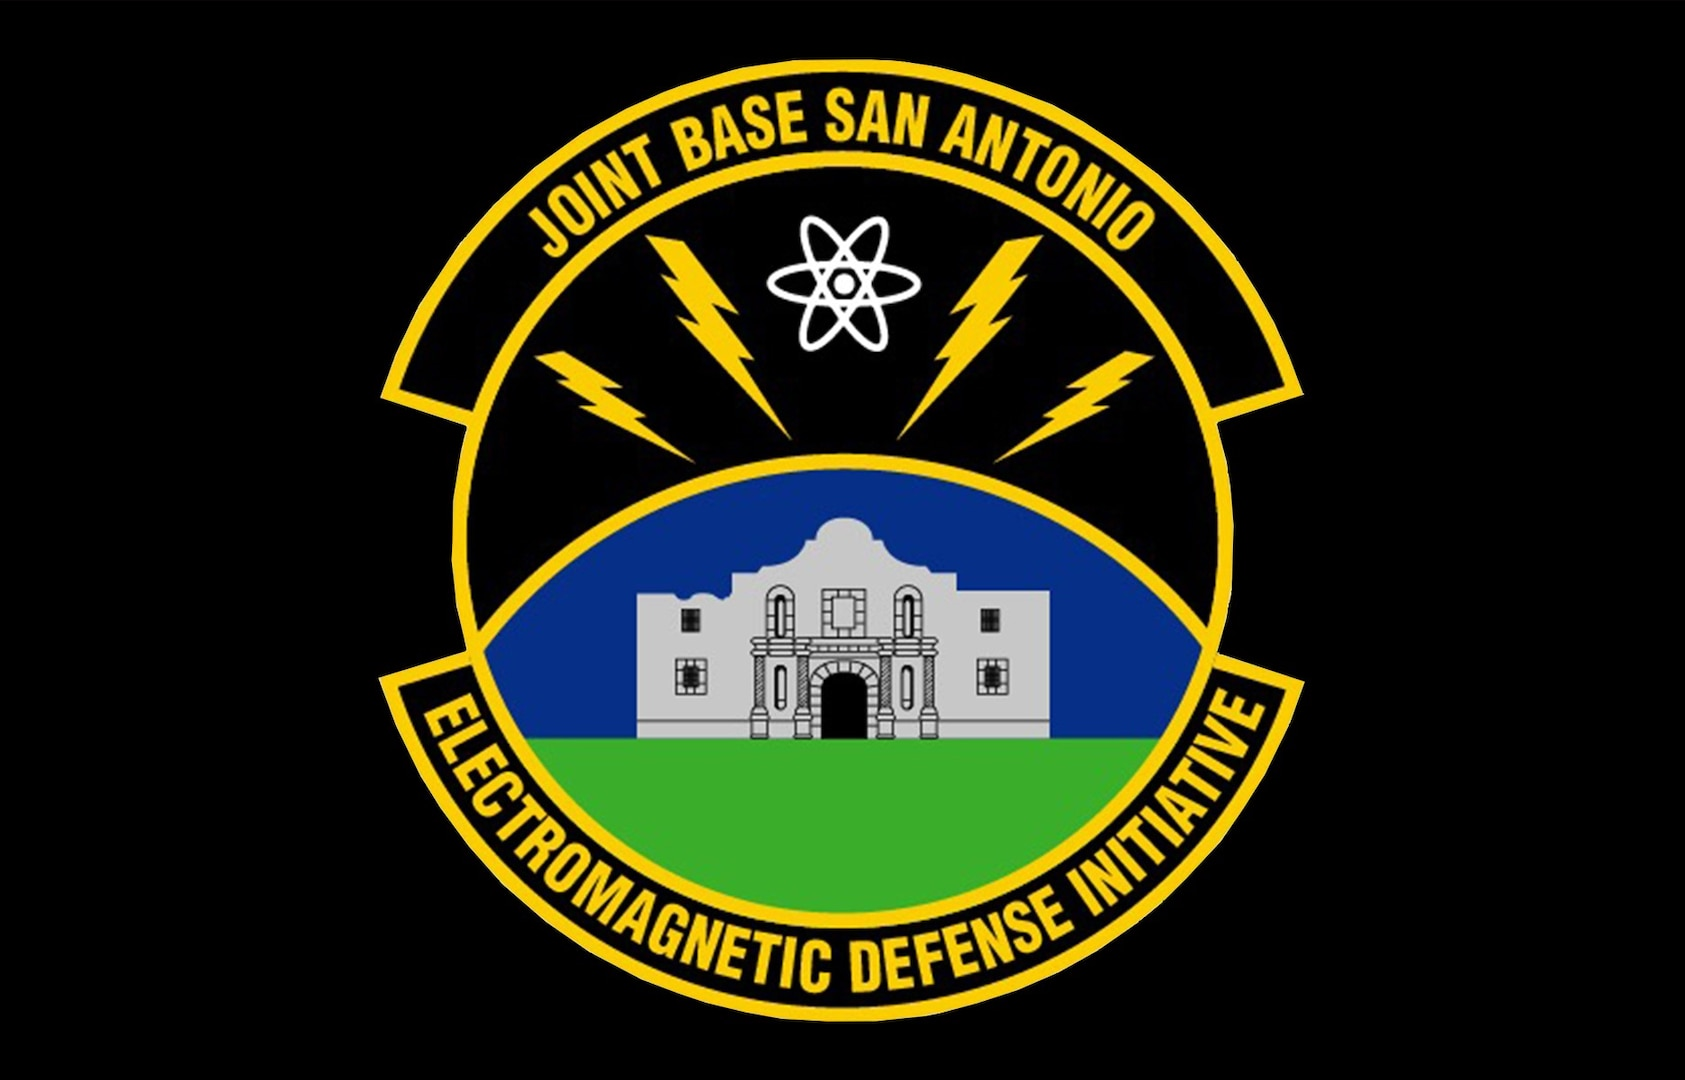 The SA-EMD was created by the Joint Base San Antonio-Electromagnetic Defense Initiative and has grown from a concept to a vibrant coalition of nearly 400 subject matter experts, community leaders, researchers, educators and many more.